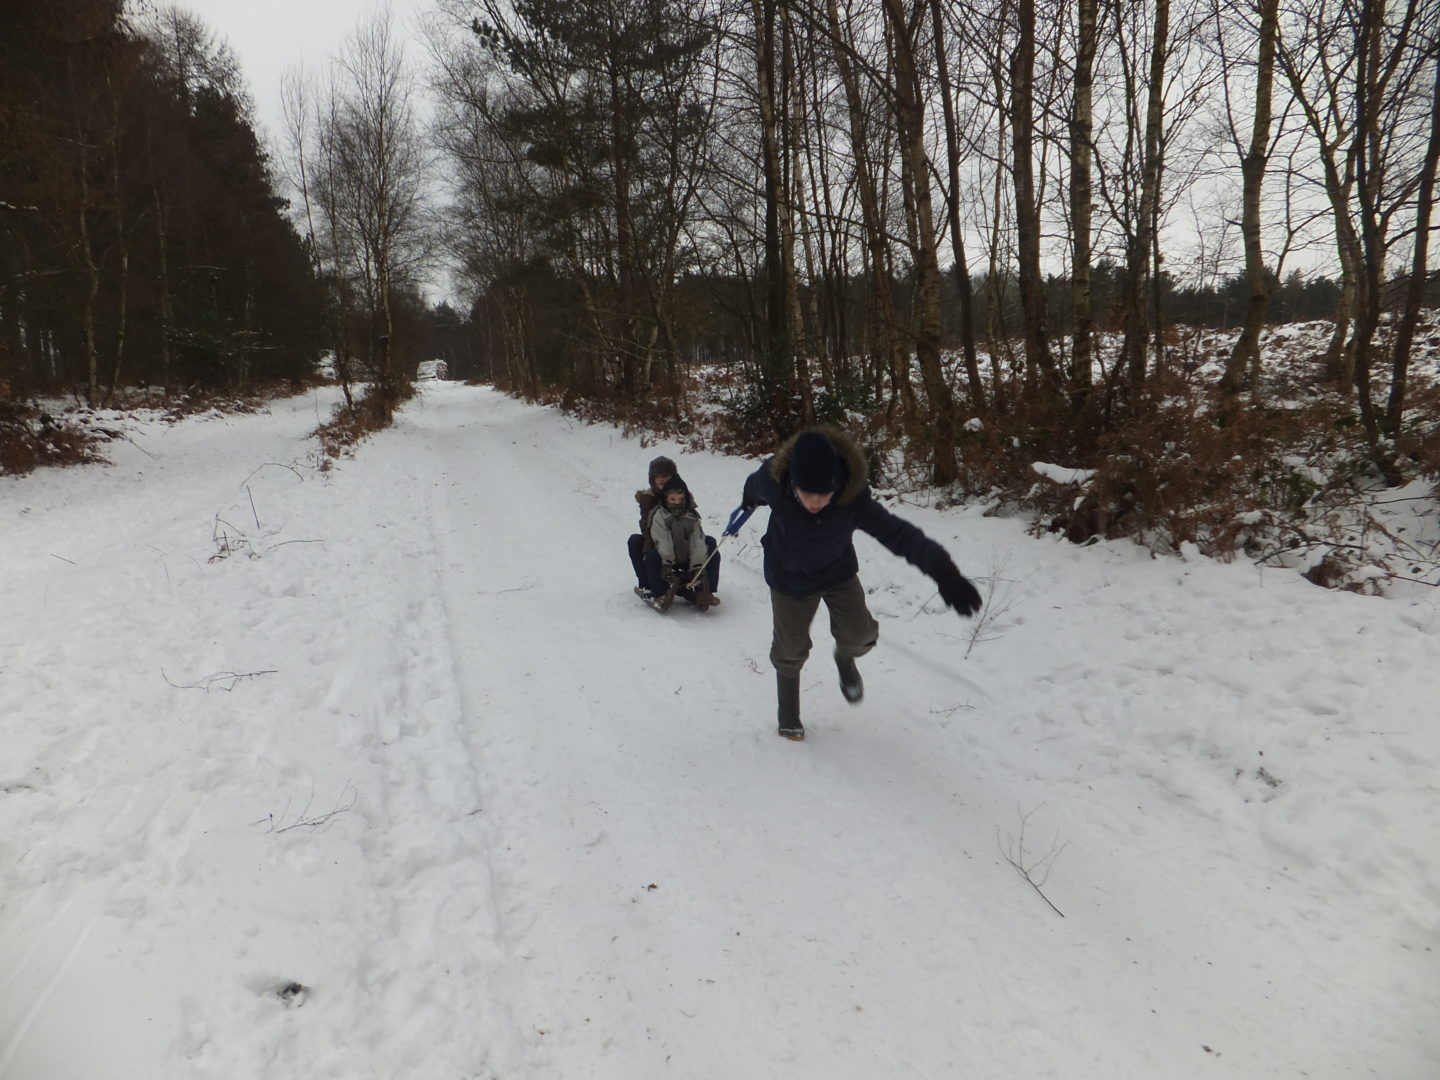 Woodland walks can be taken in all weathers especially the snow when accompanied by a sledge